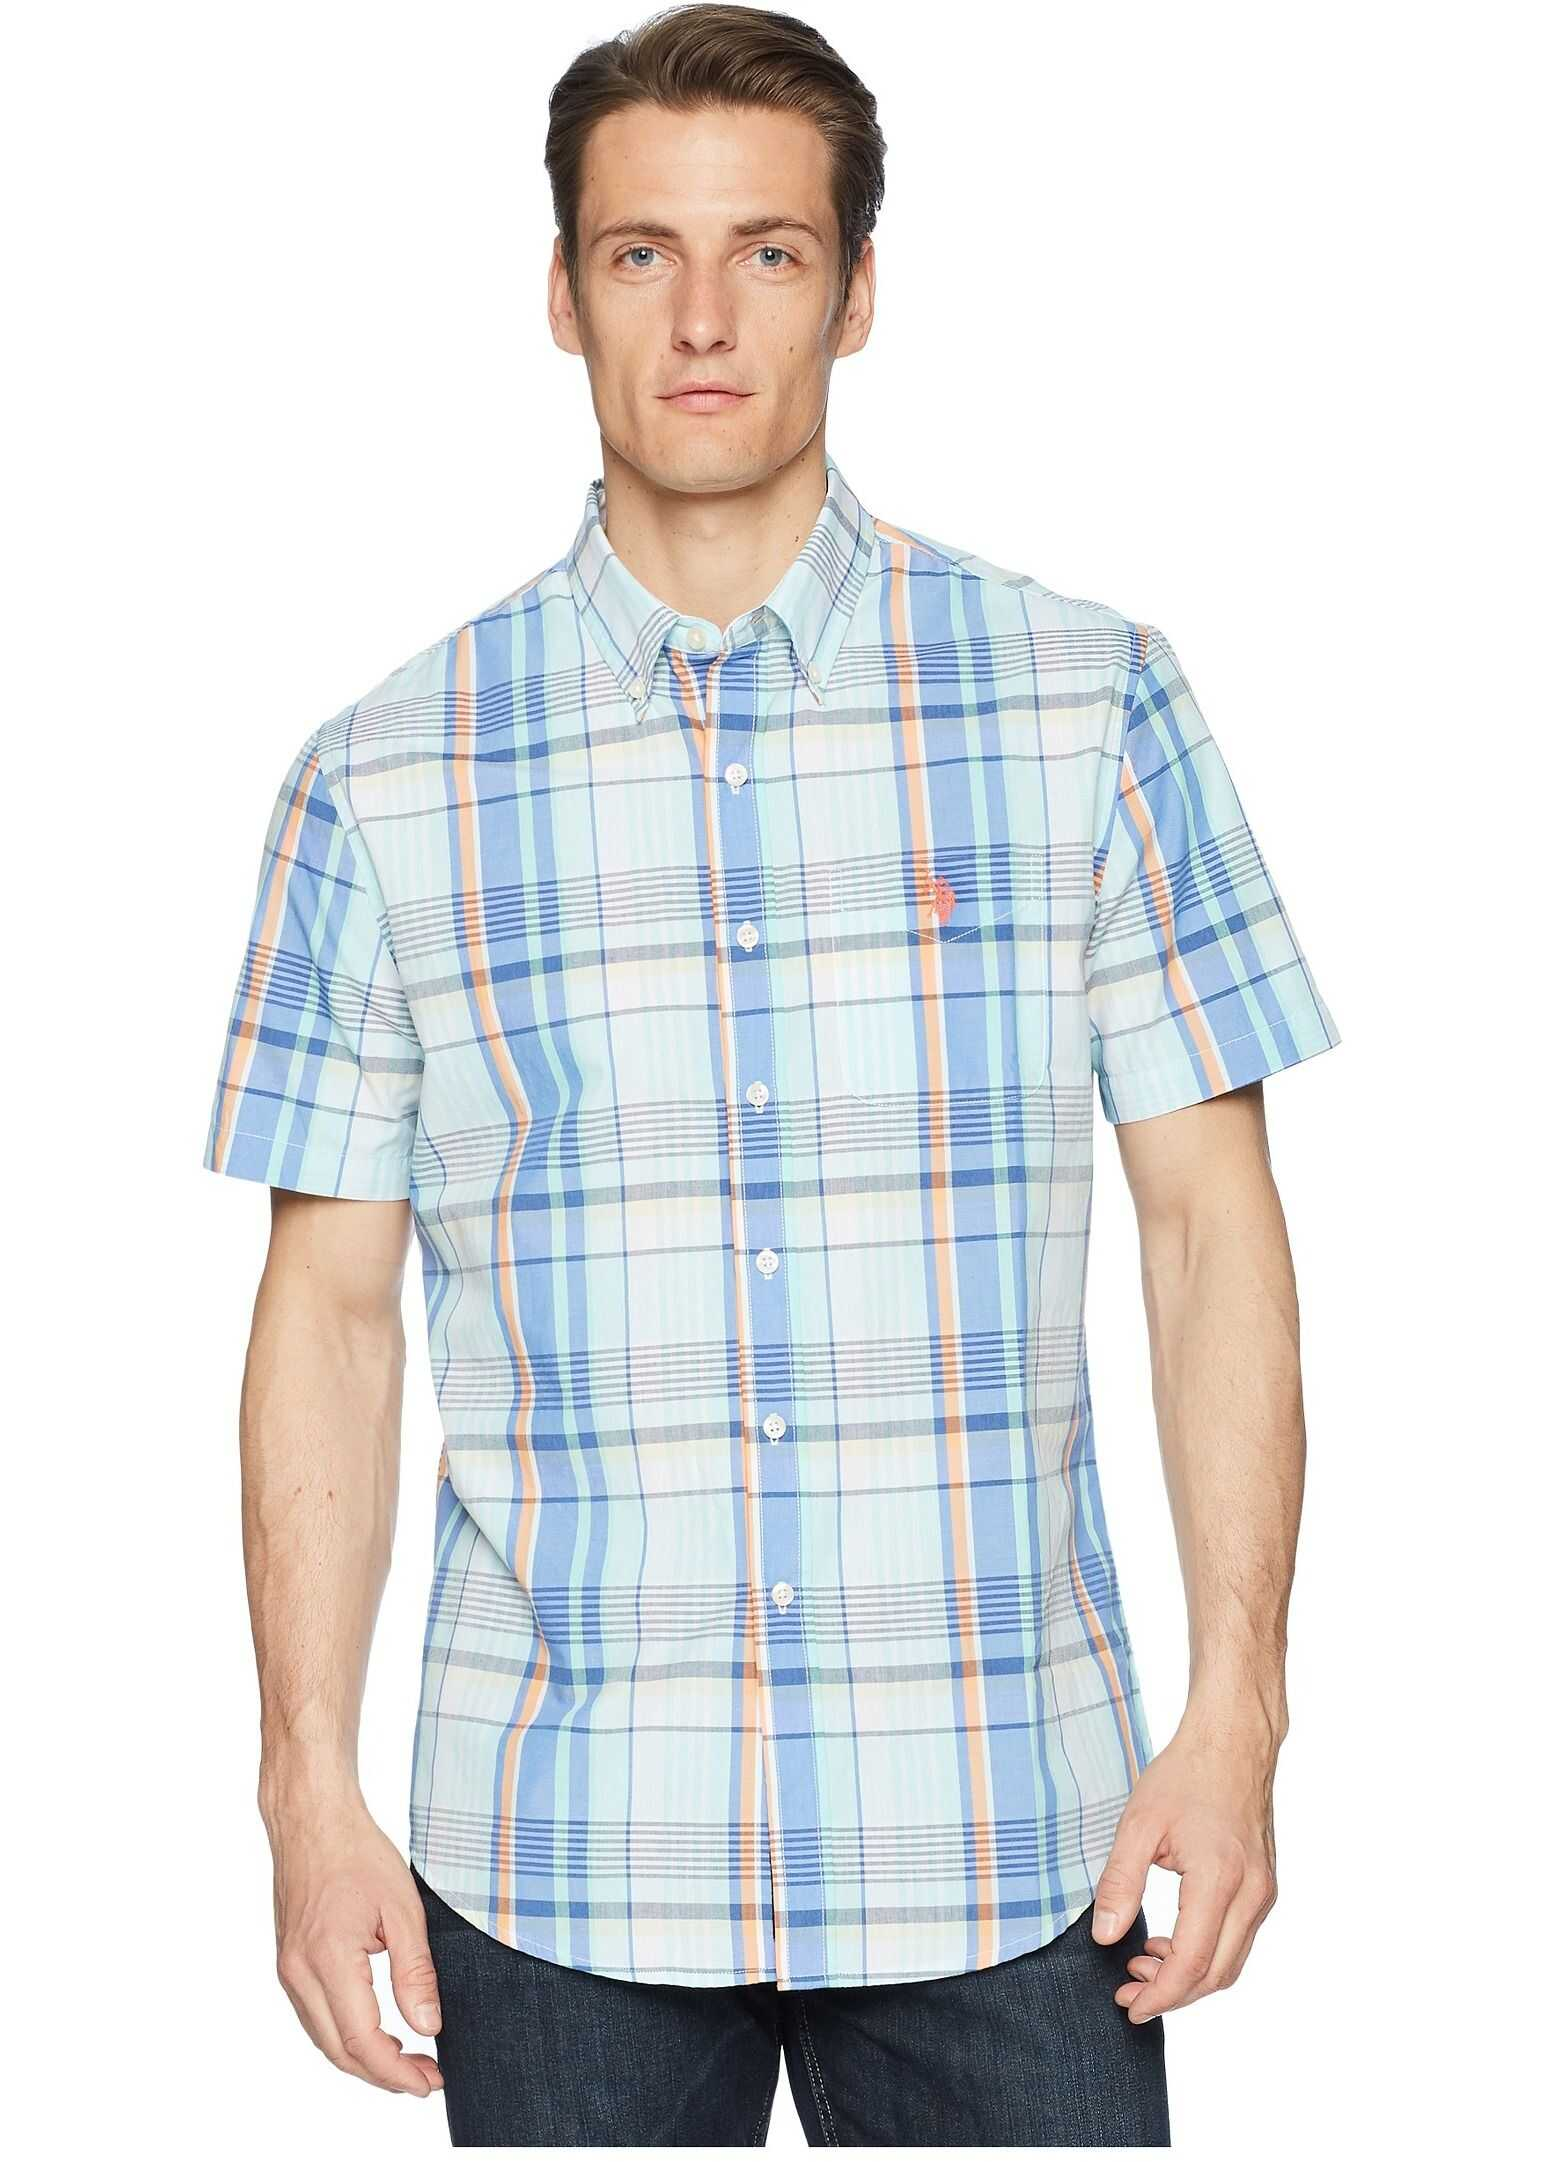 U.S. POLO ASSN. Plaid Woven Shirt Blue Sail